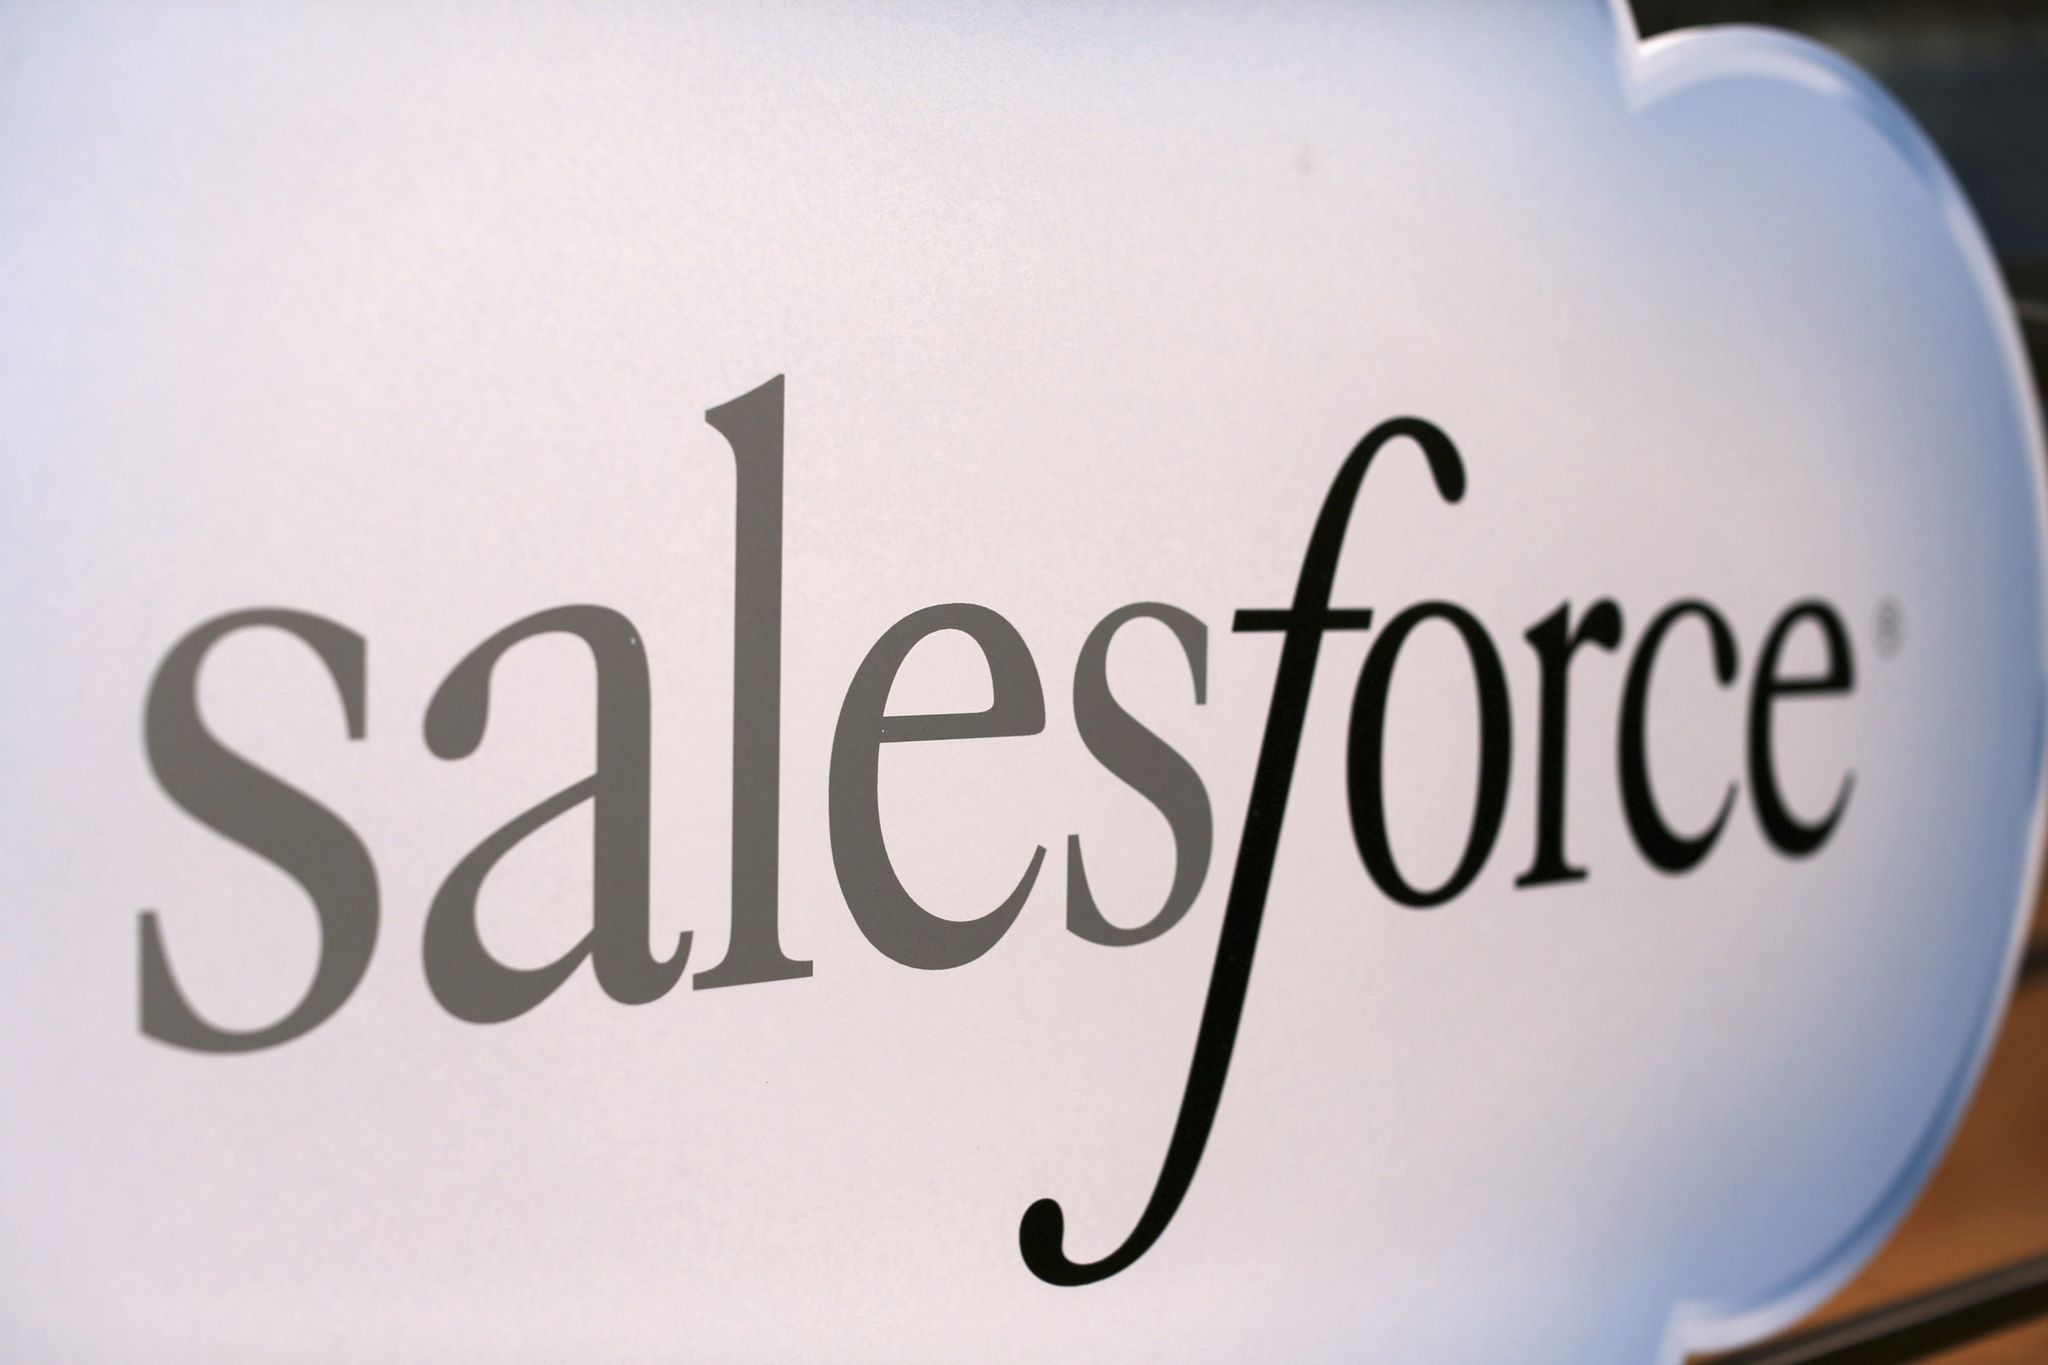 How to add more value to the organization with the help of sales force investment?